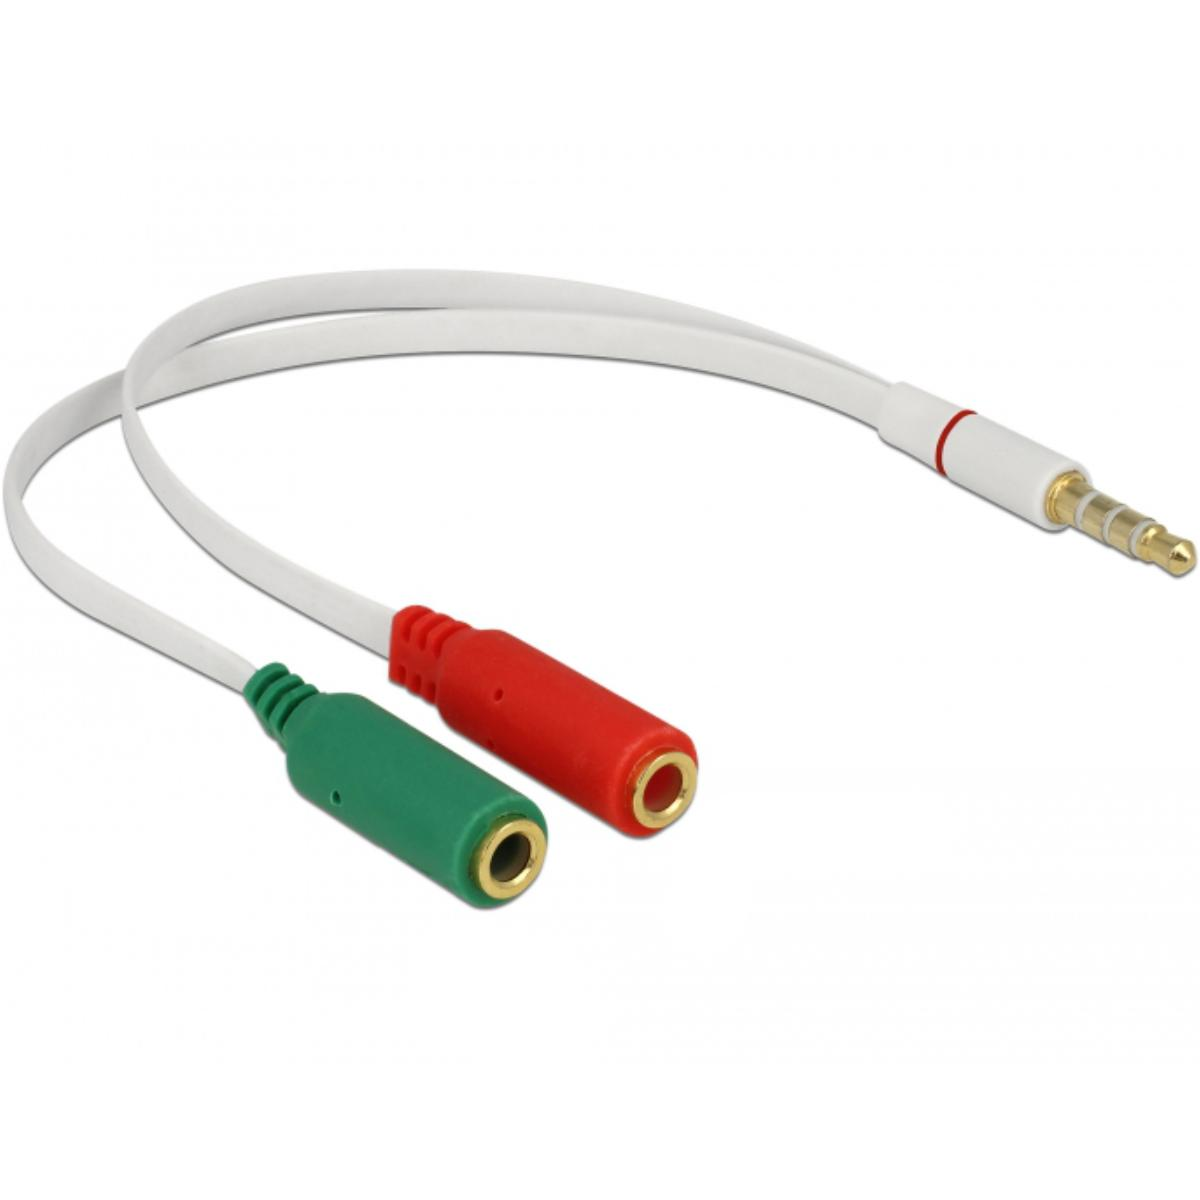 Jack splitter kabel - Microfoon en audio